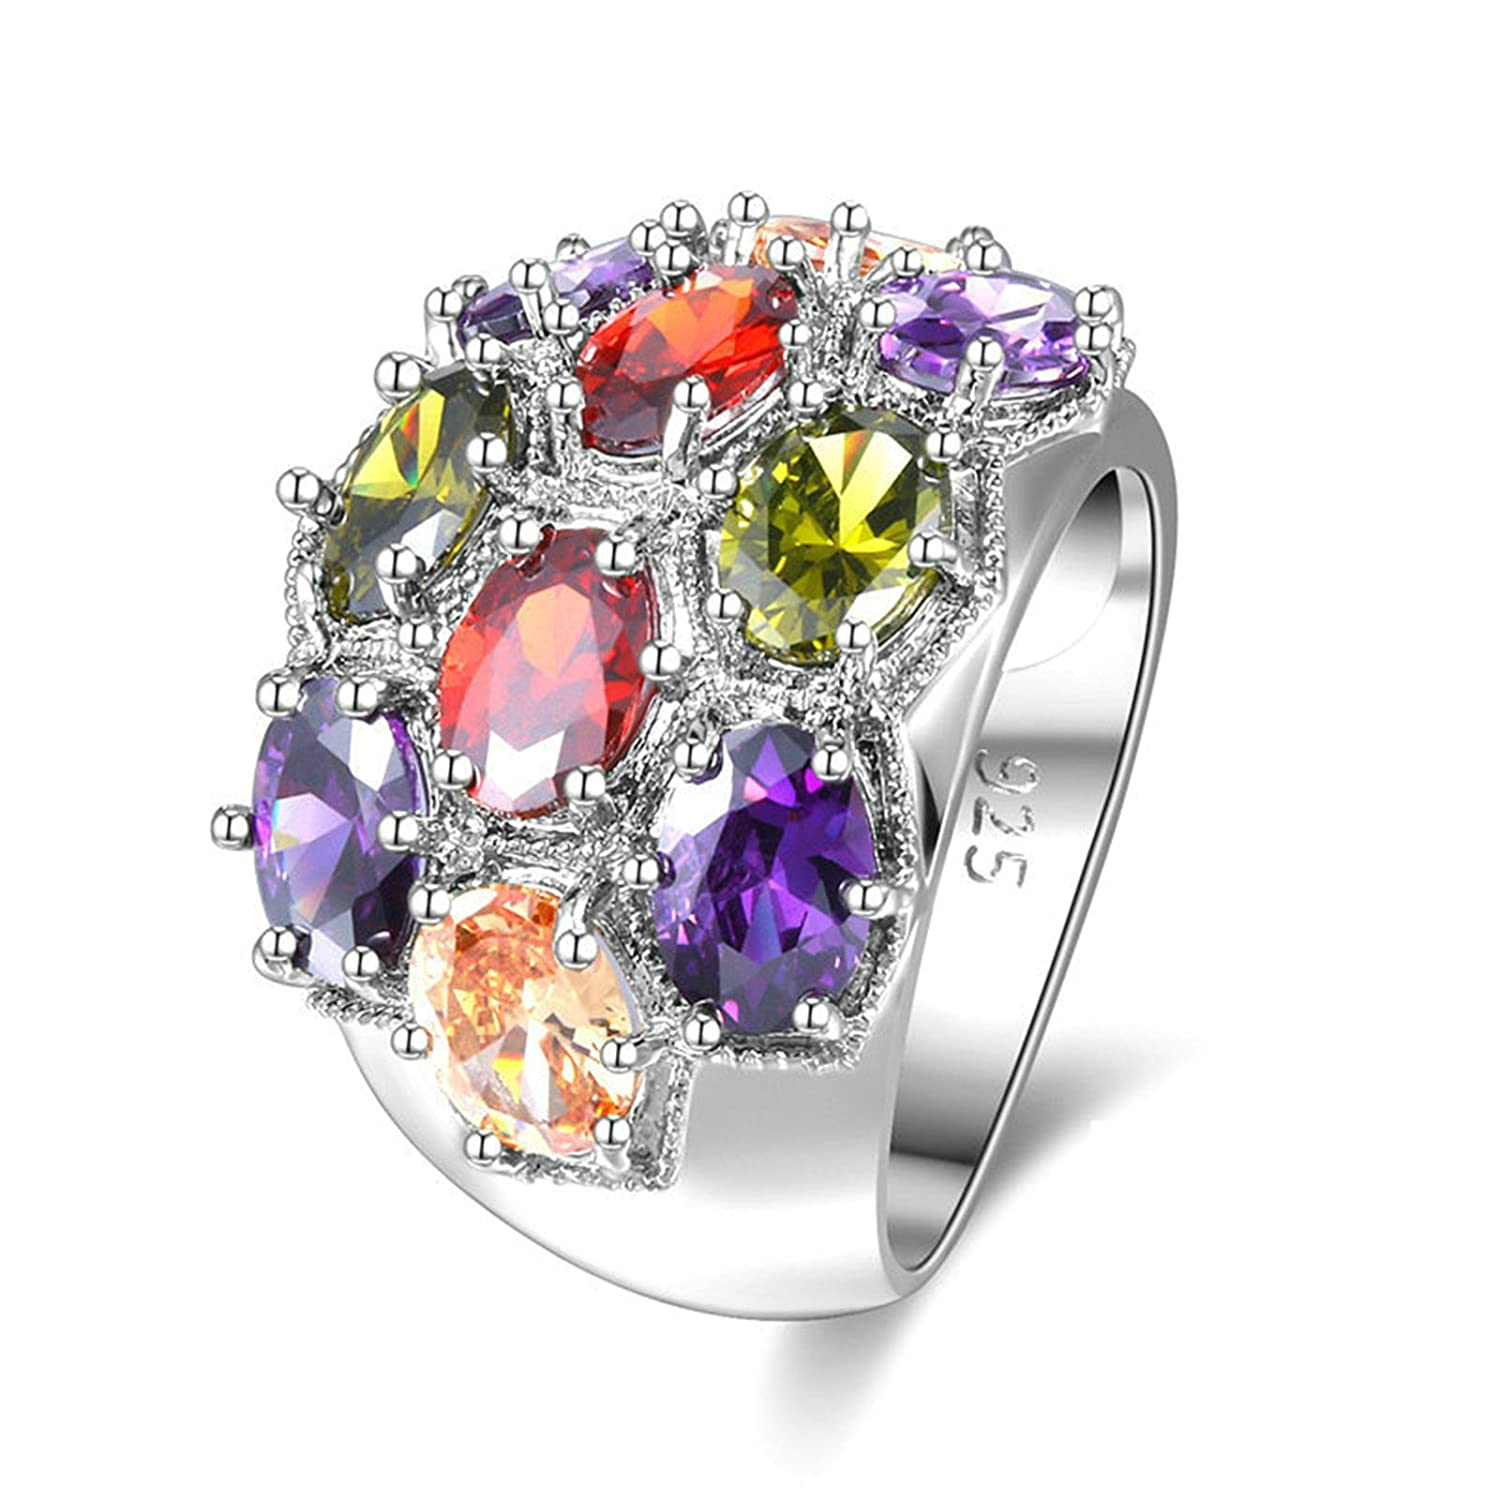 AMDXD Jewelry Silver Plated Wedding Rings for Women Colorful Flower Oval CZ